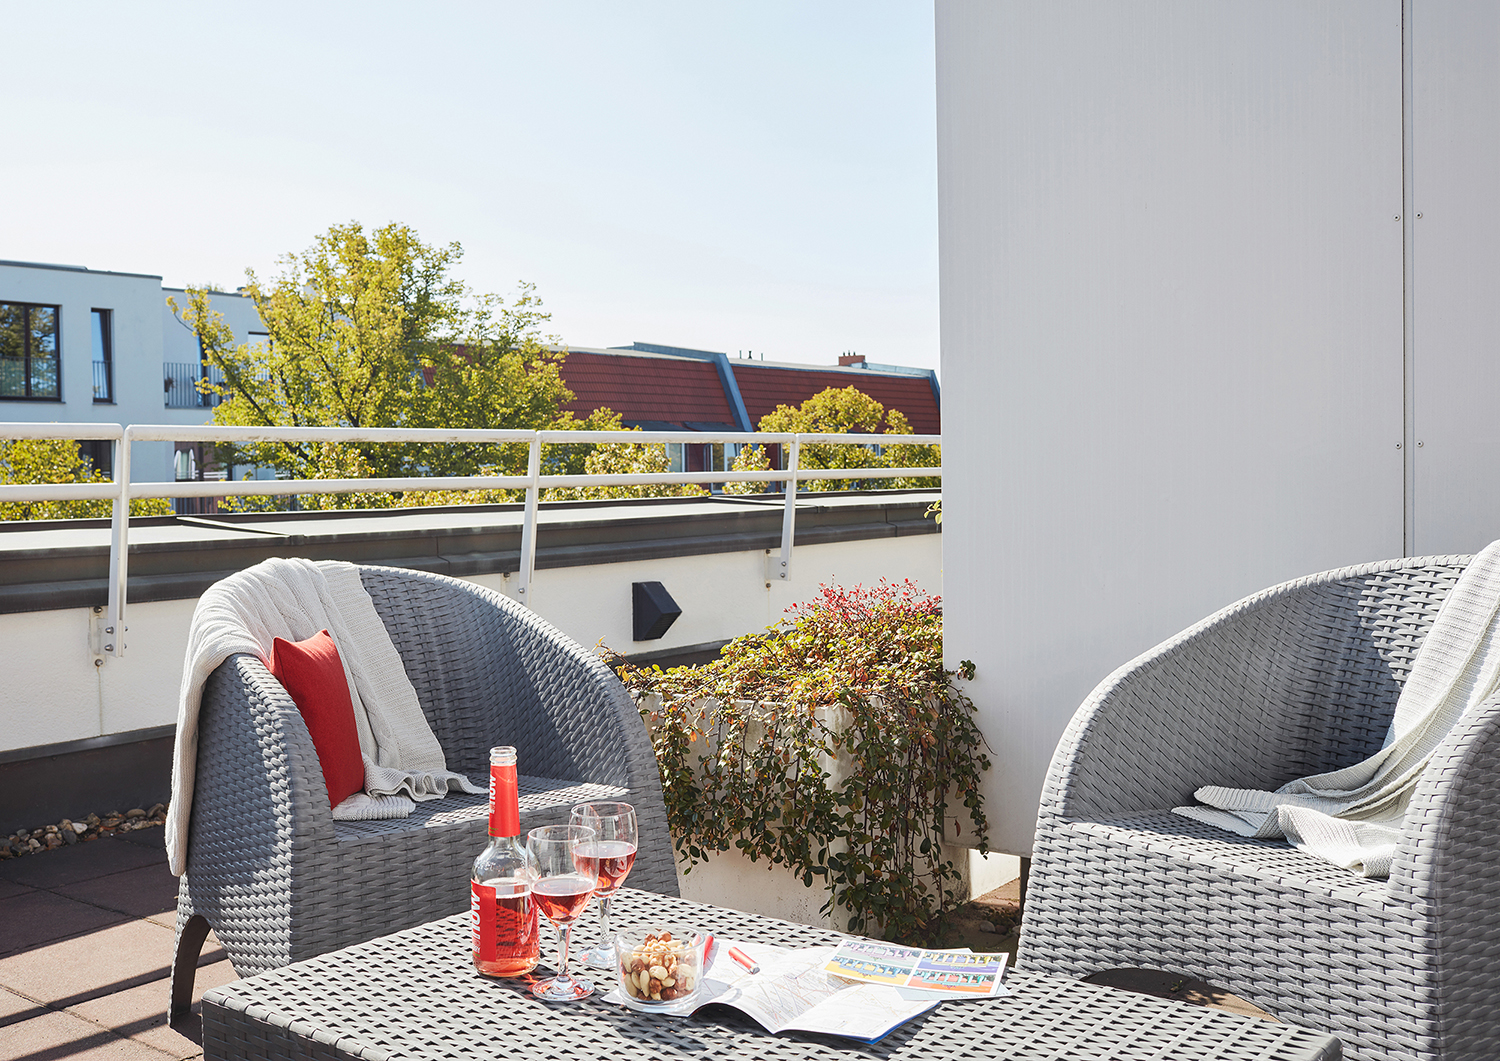 Balcony at Living Hotel Weißensee Apartments, Weisensee, Berlin